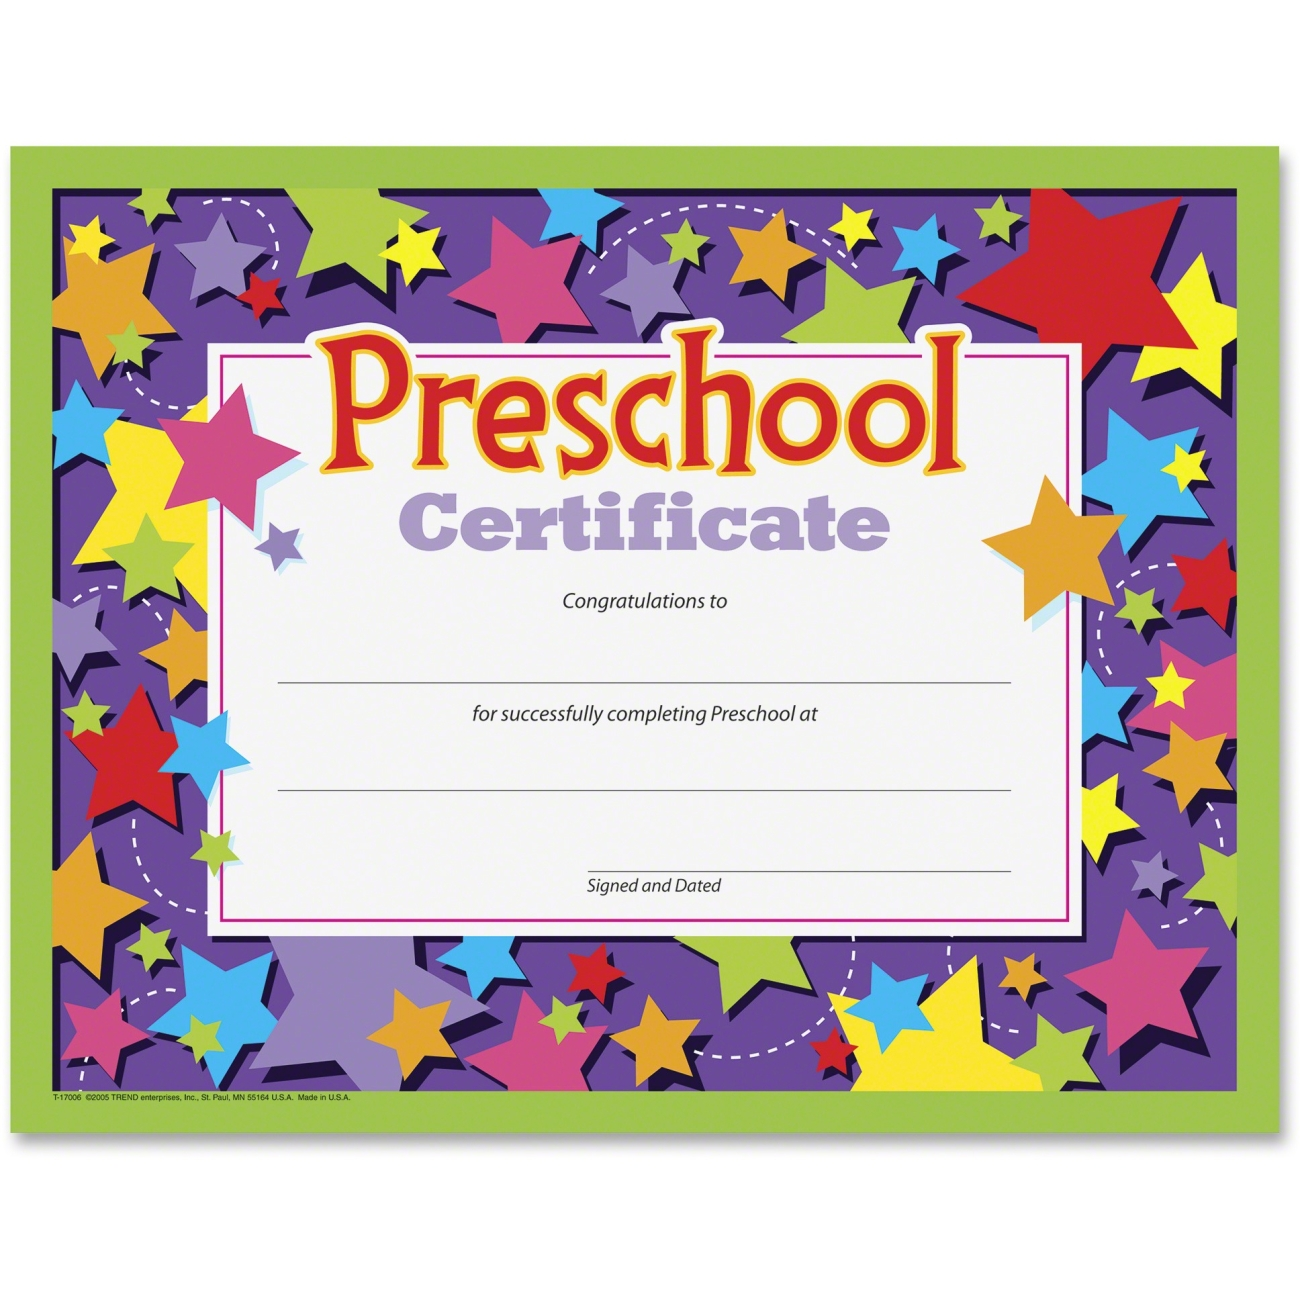 Kindergarten Awards Certificates: Preschool Certificate Trend Enterprises, Inc T-17006